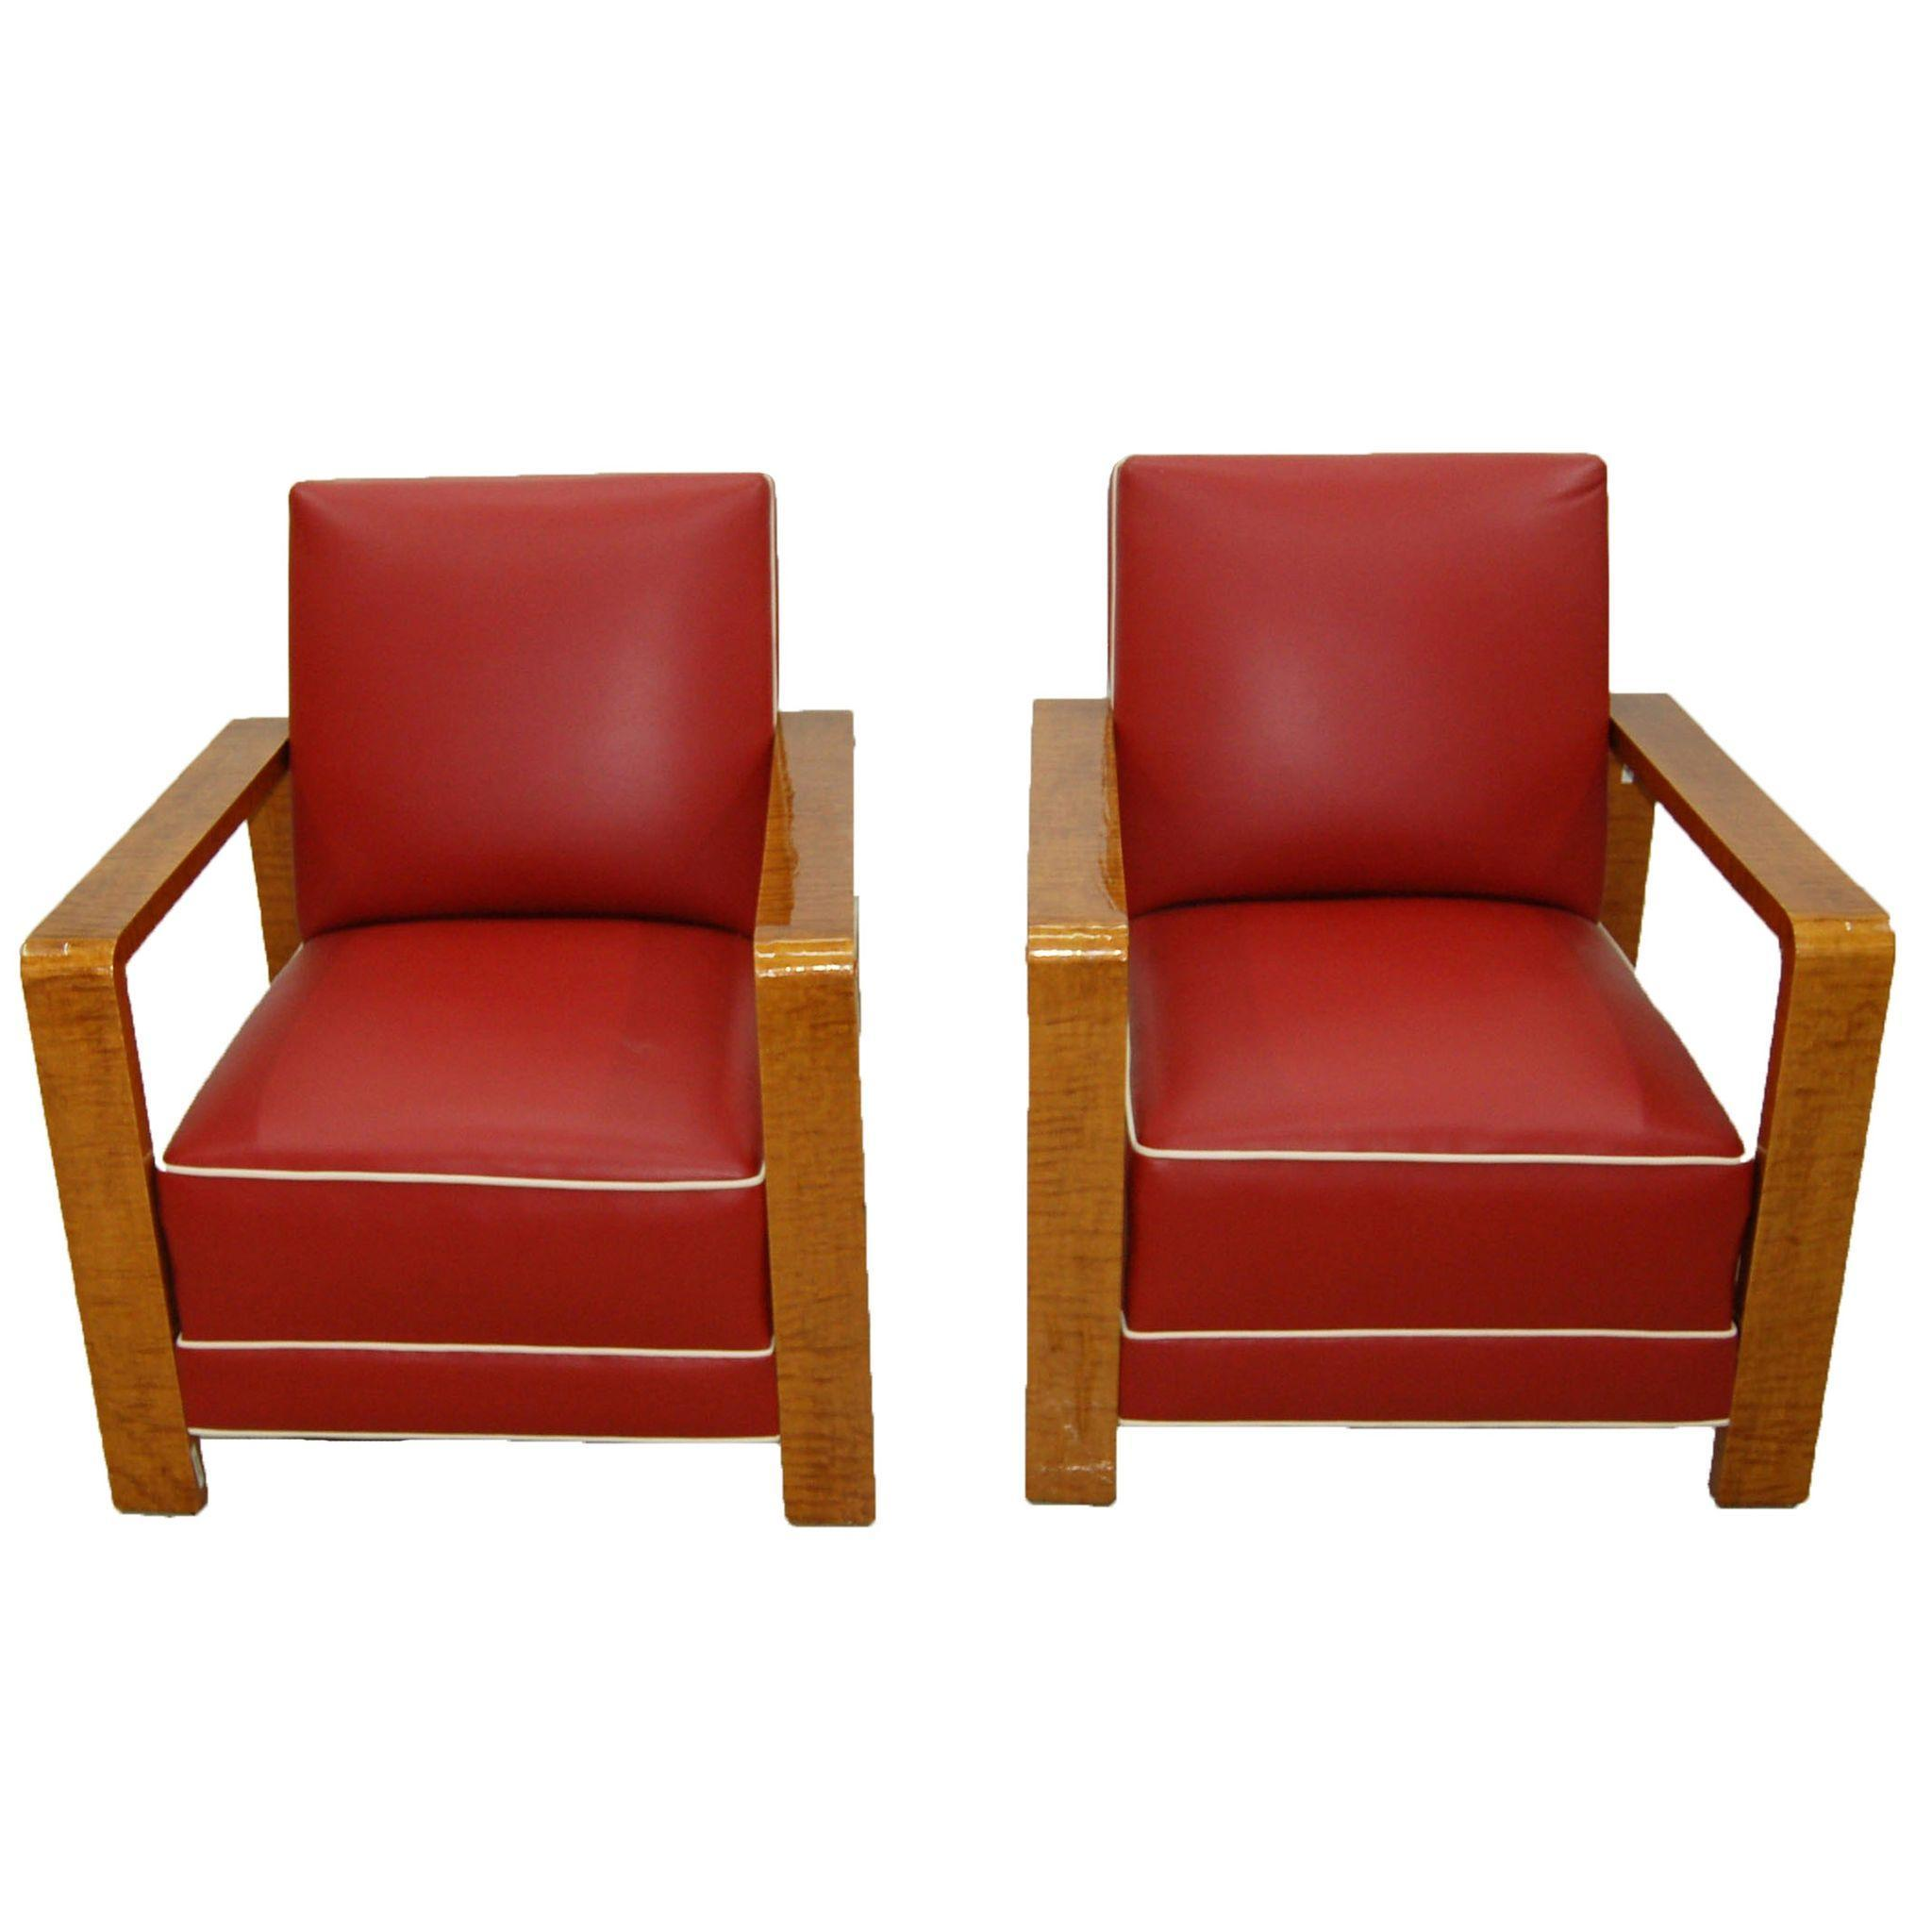 6046 Pair of Matching Art Deco Armchairs c. 1920